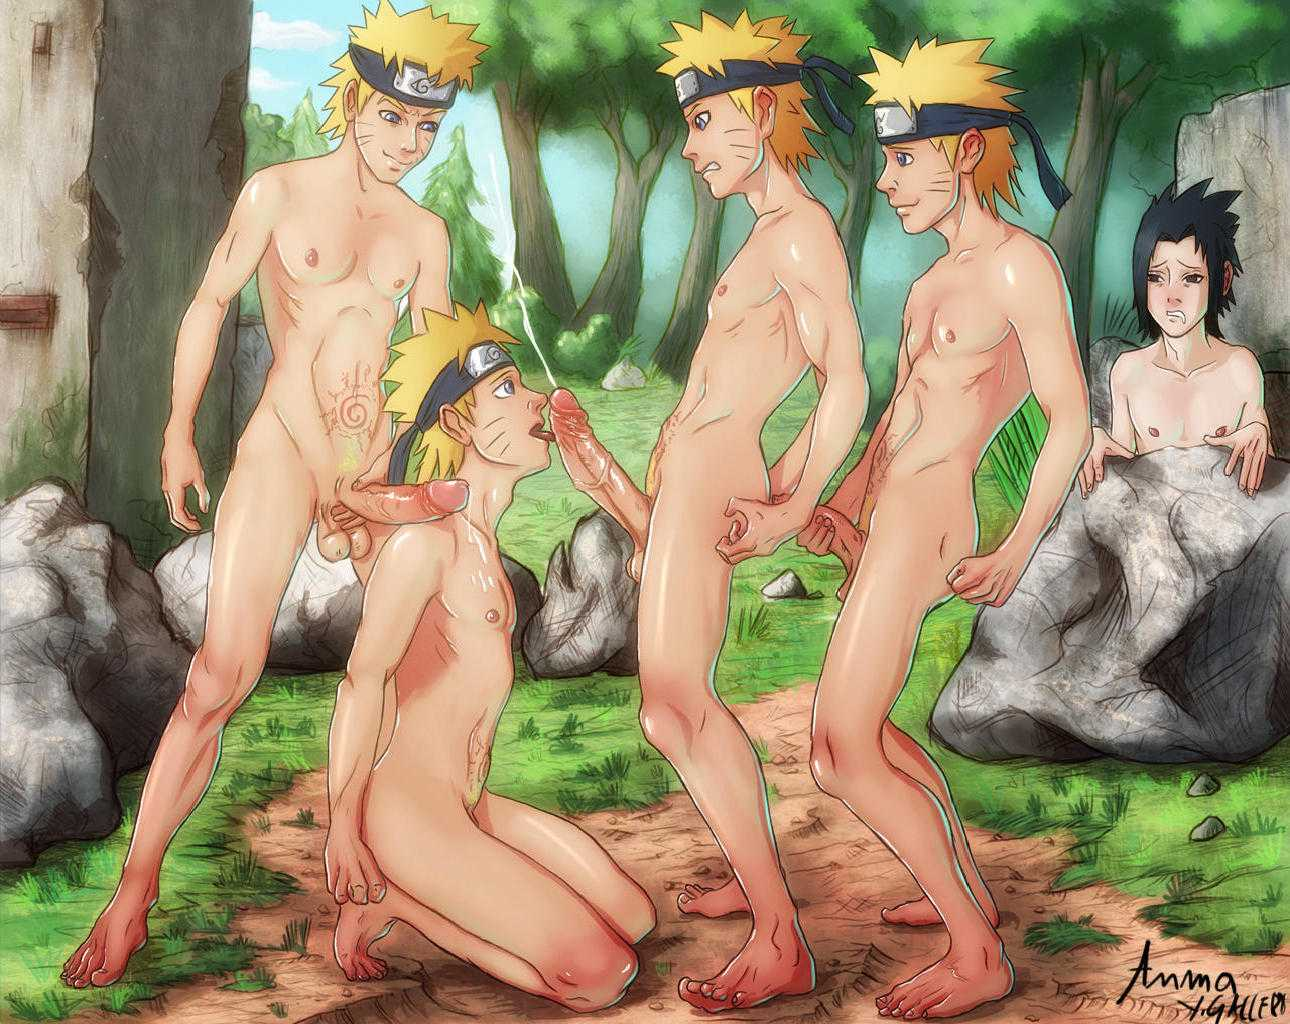 Naruto shippuden boys naked, young girl fantises